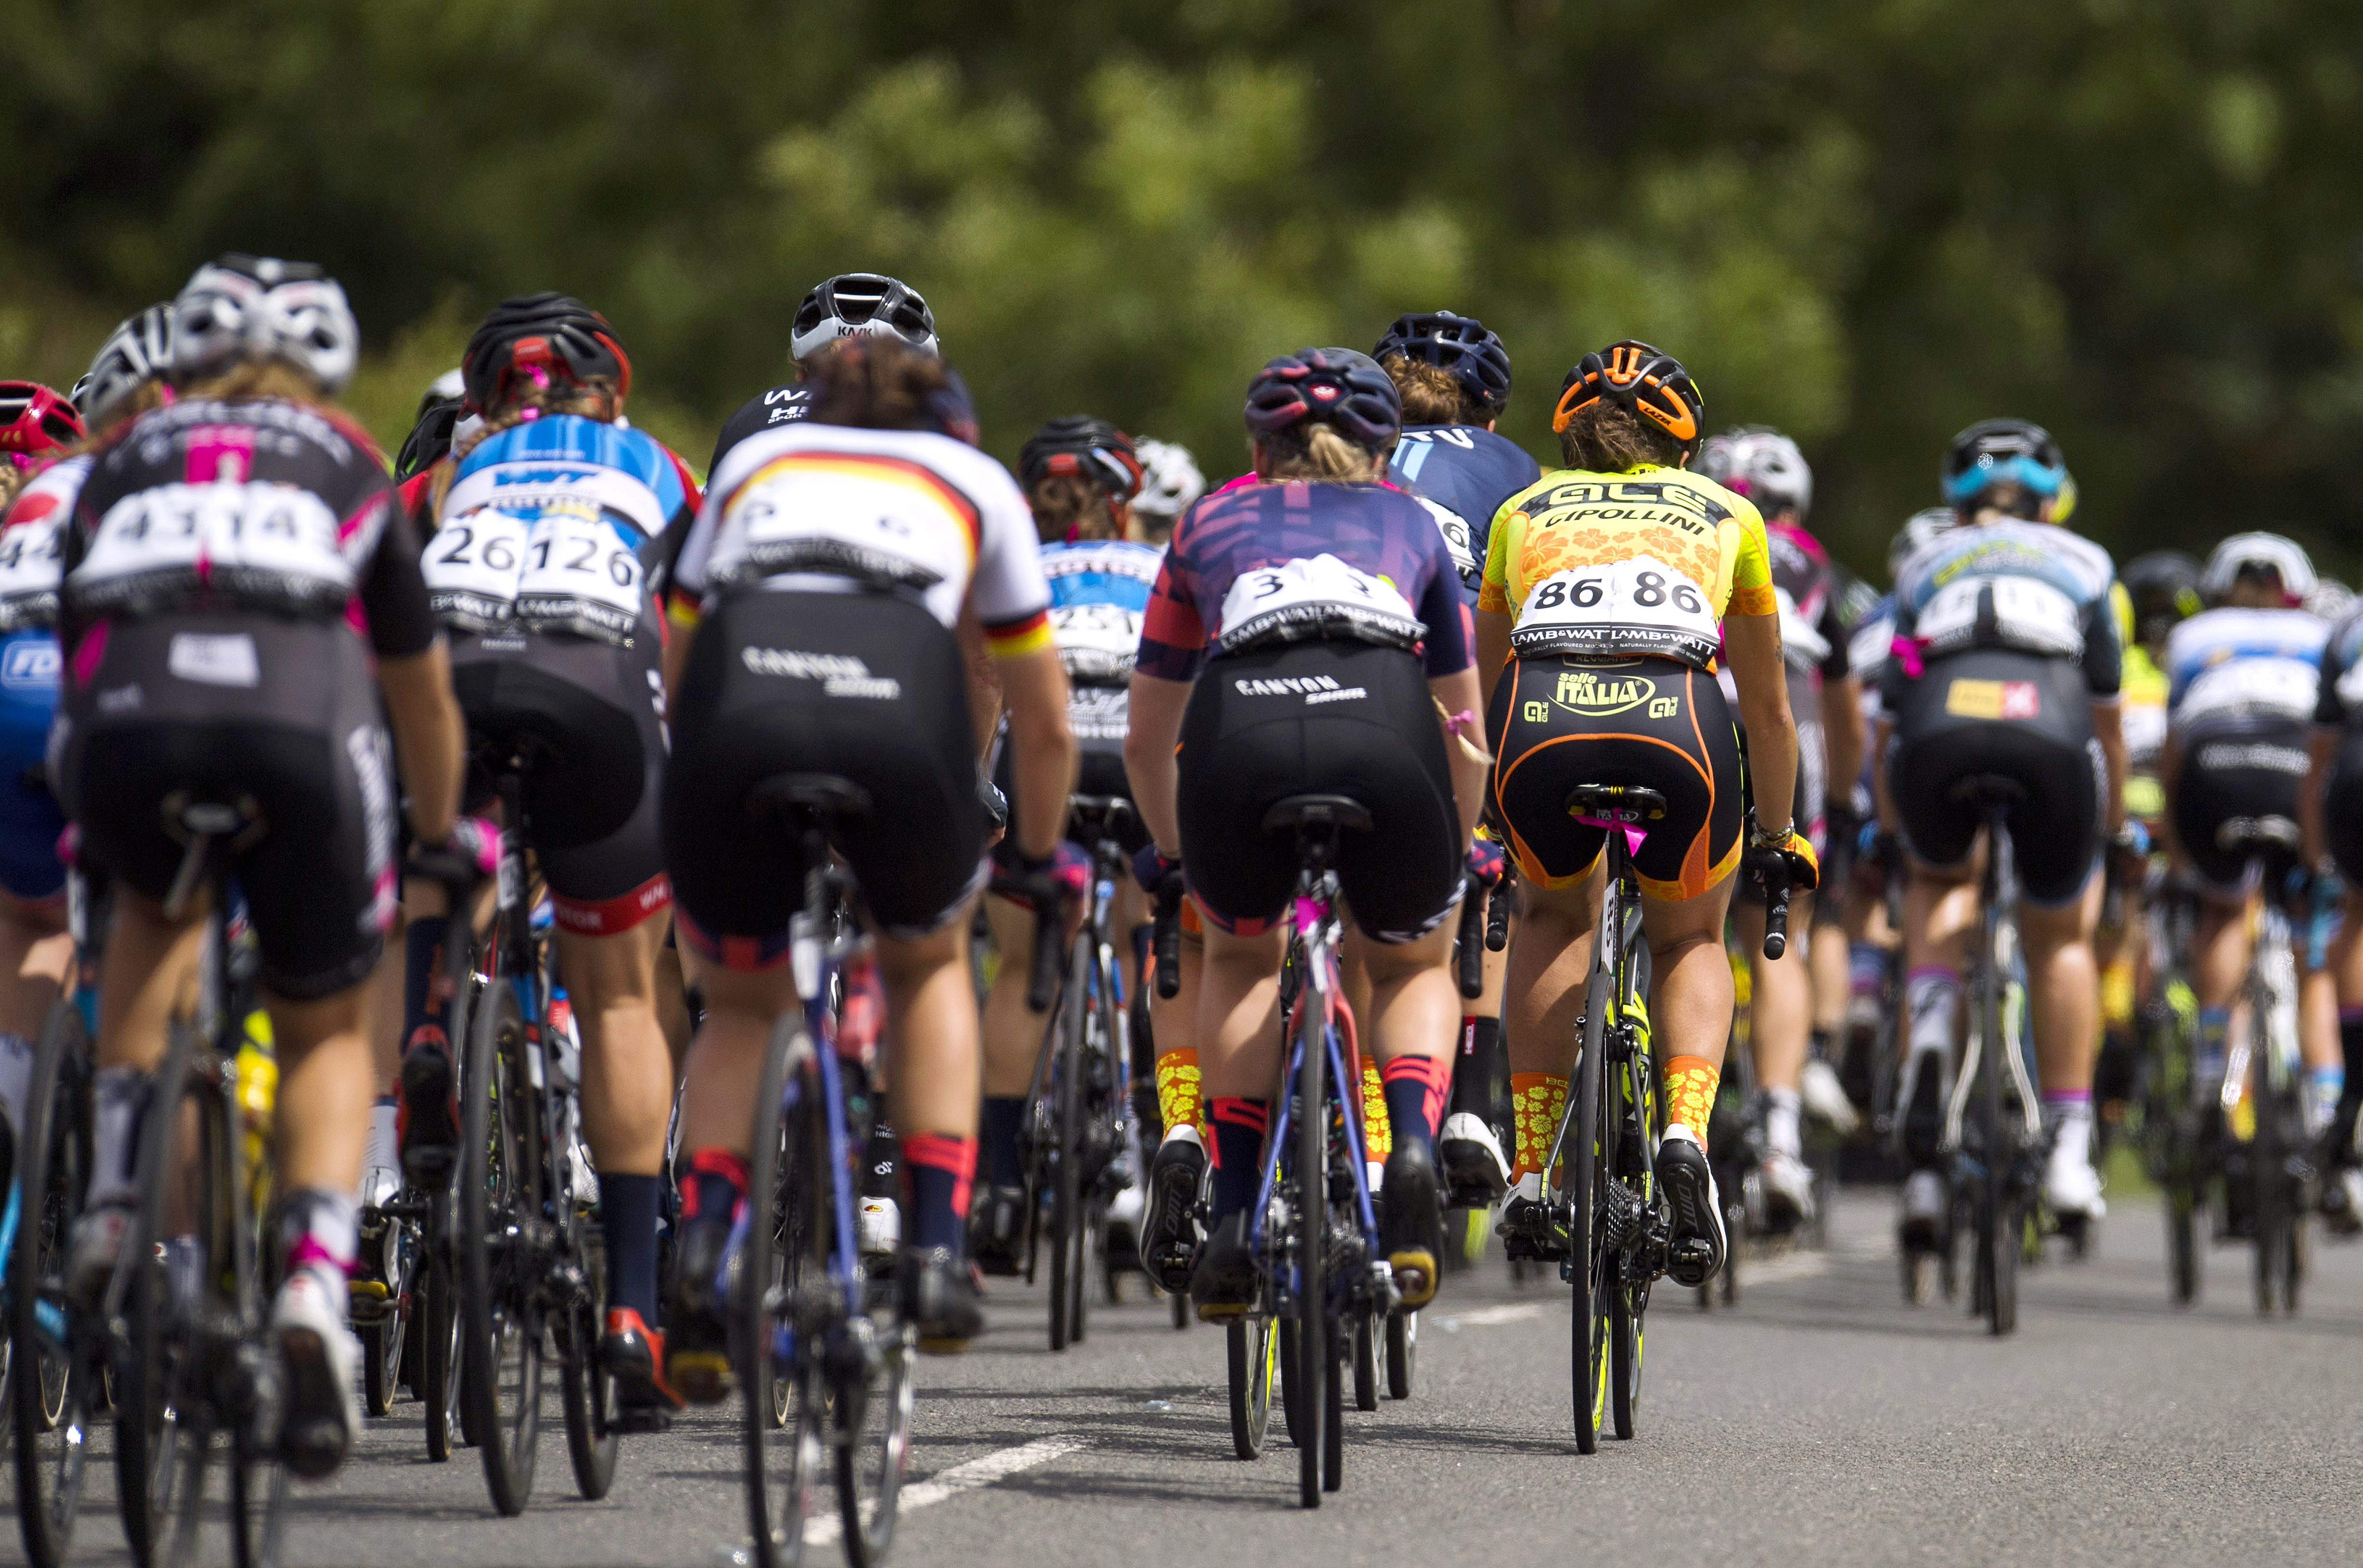 Cost of Team Sky women's squad would be 'a drop in the ocean